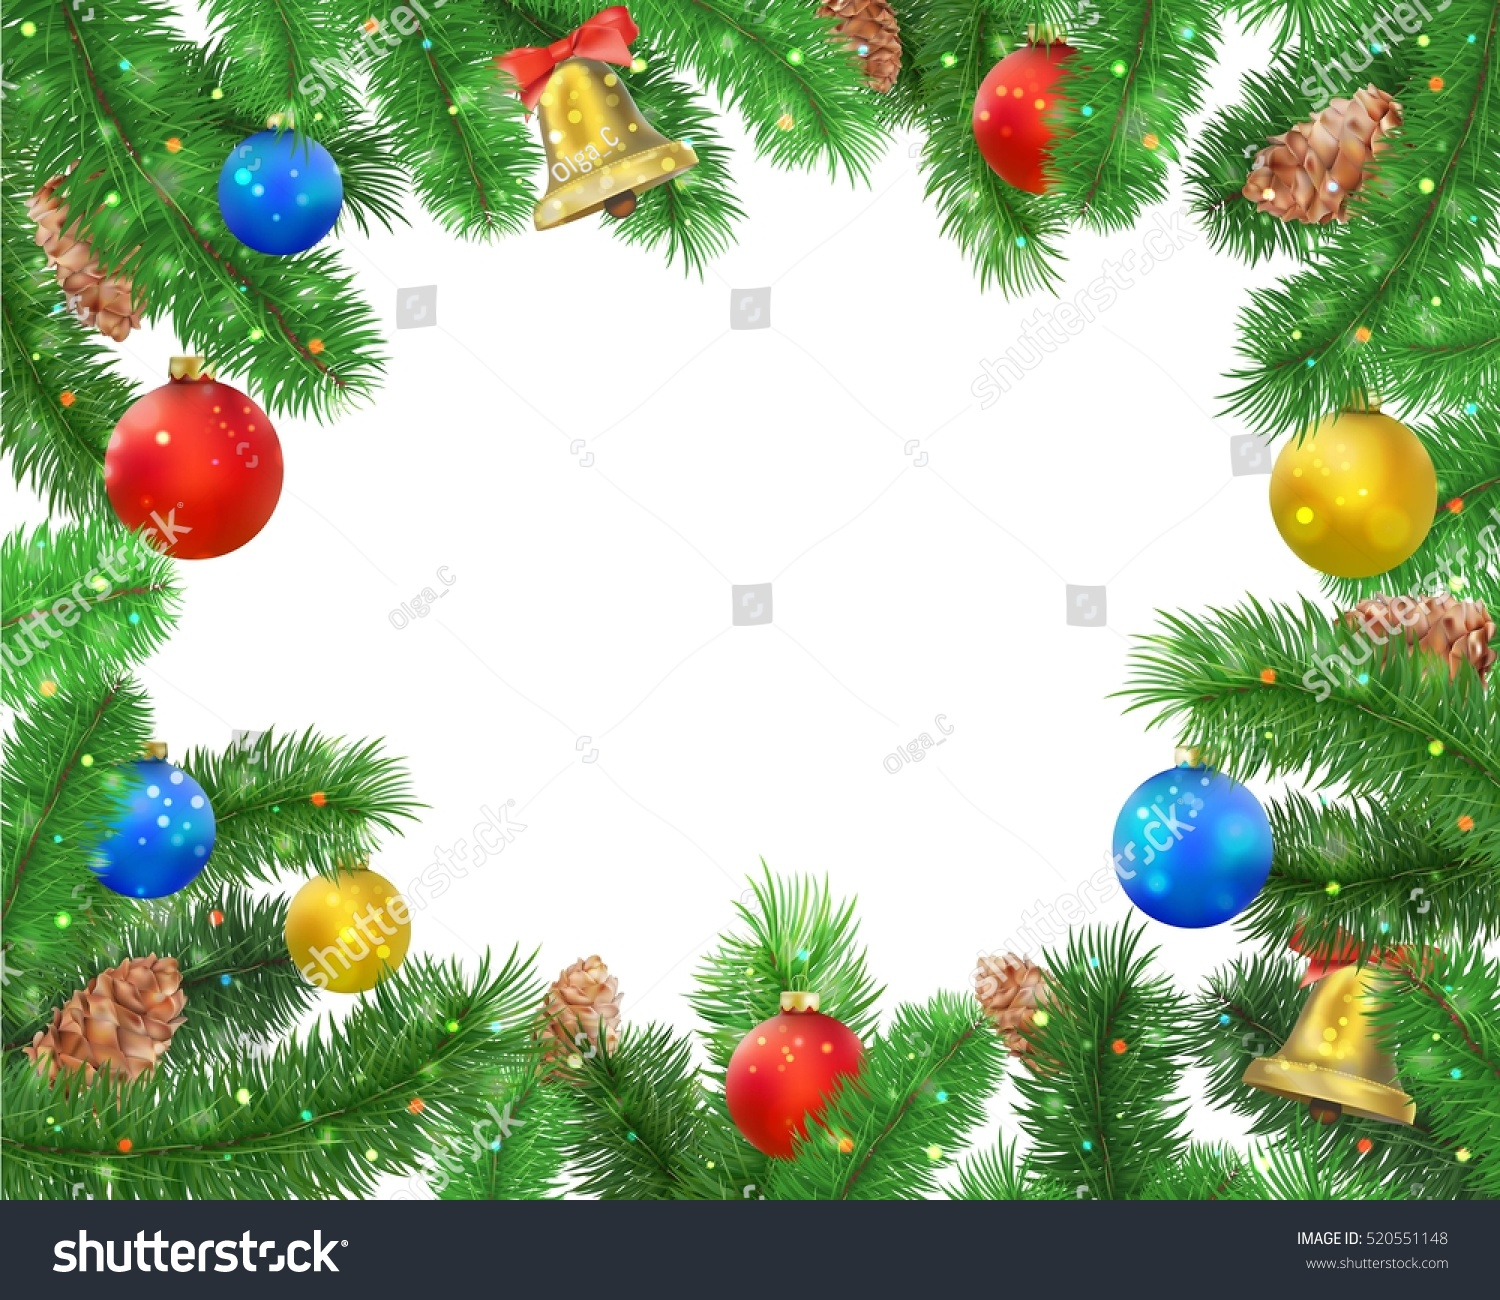 Christmas background fir tree branches pine stock vector for Red and yellow christmas tree